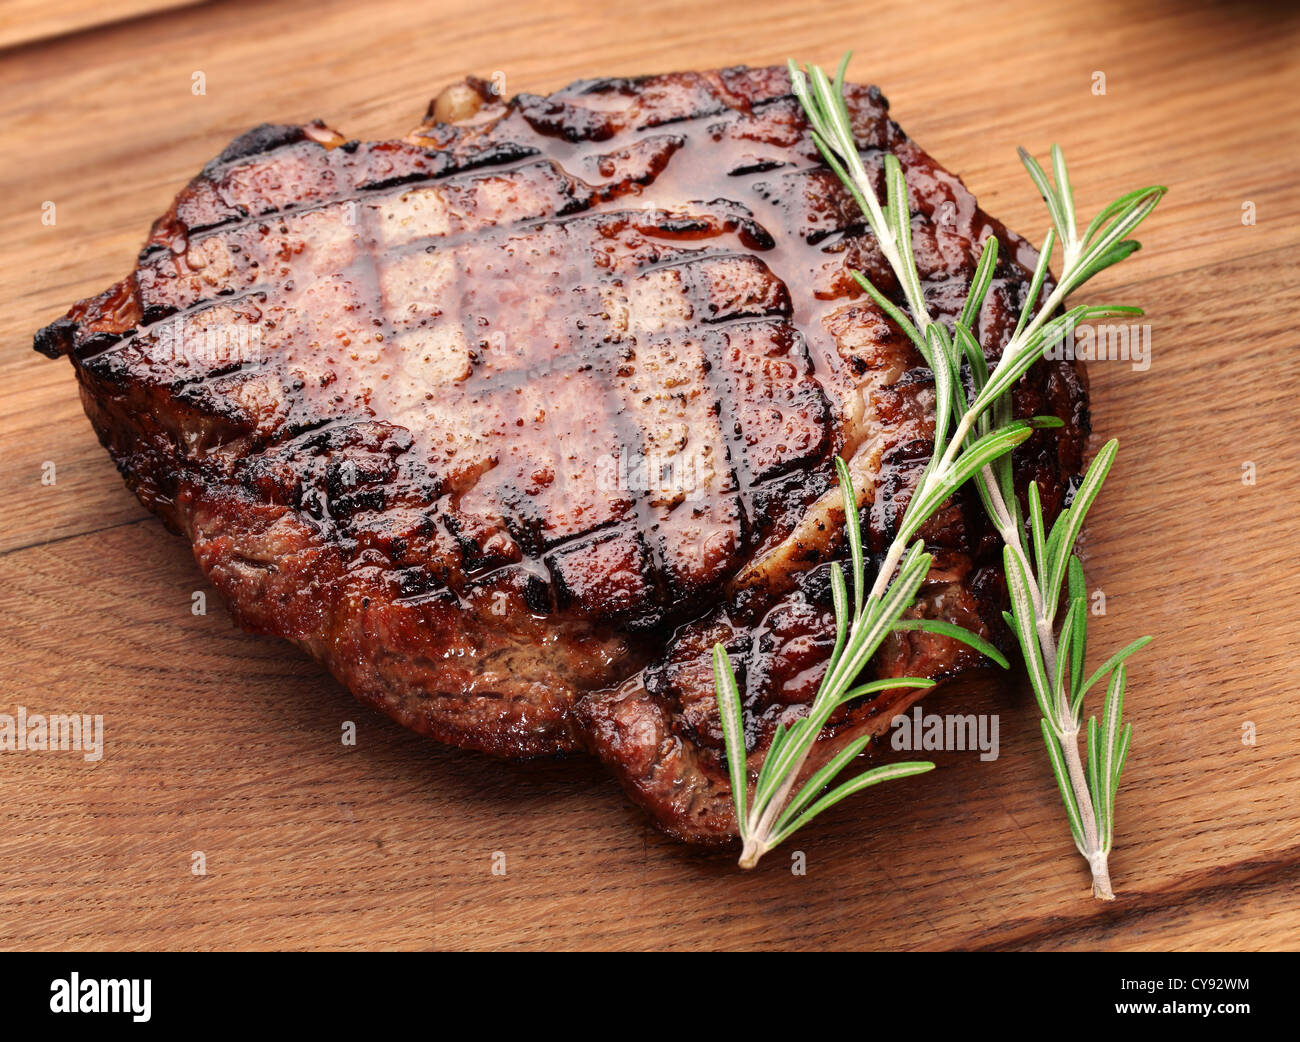 Beef steak on a wooden table. - Stock Image